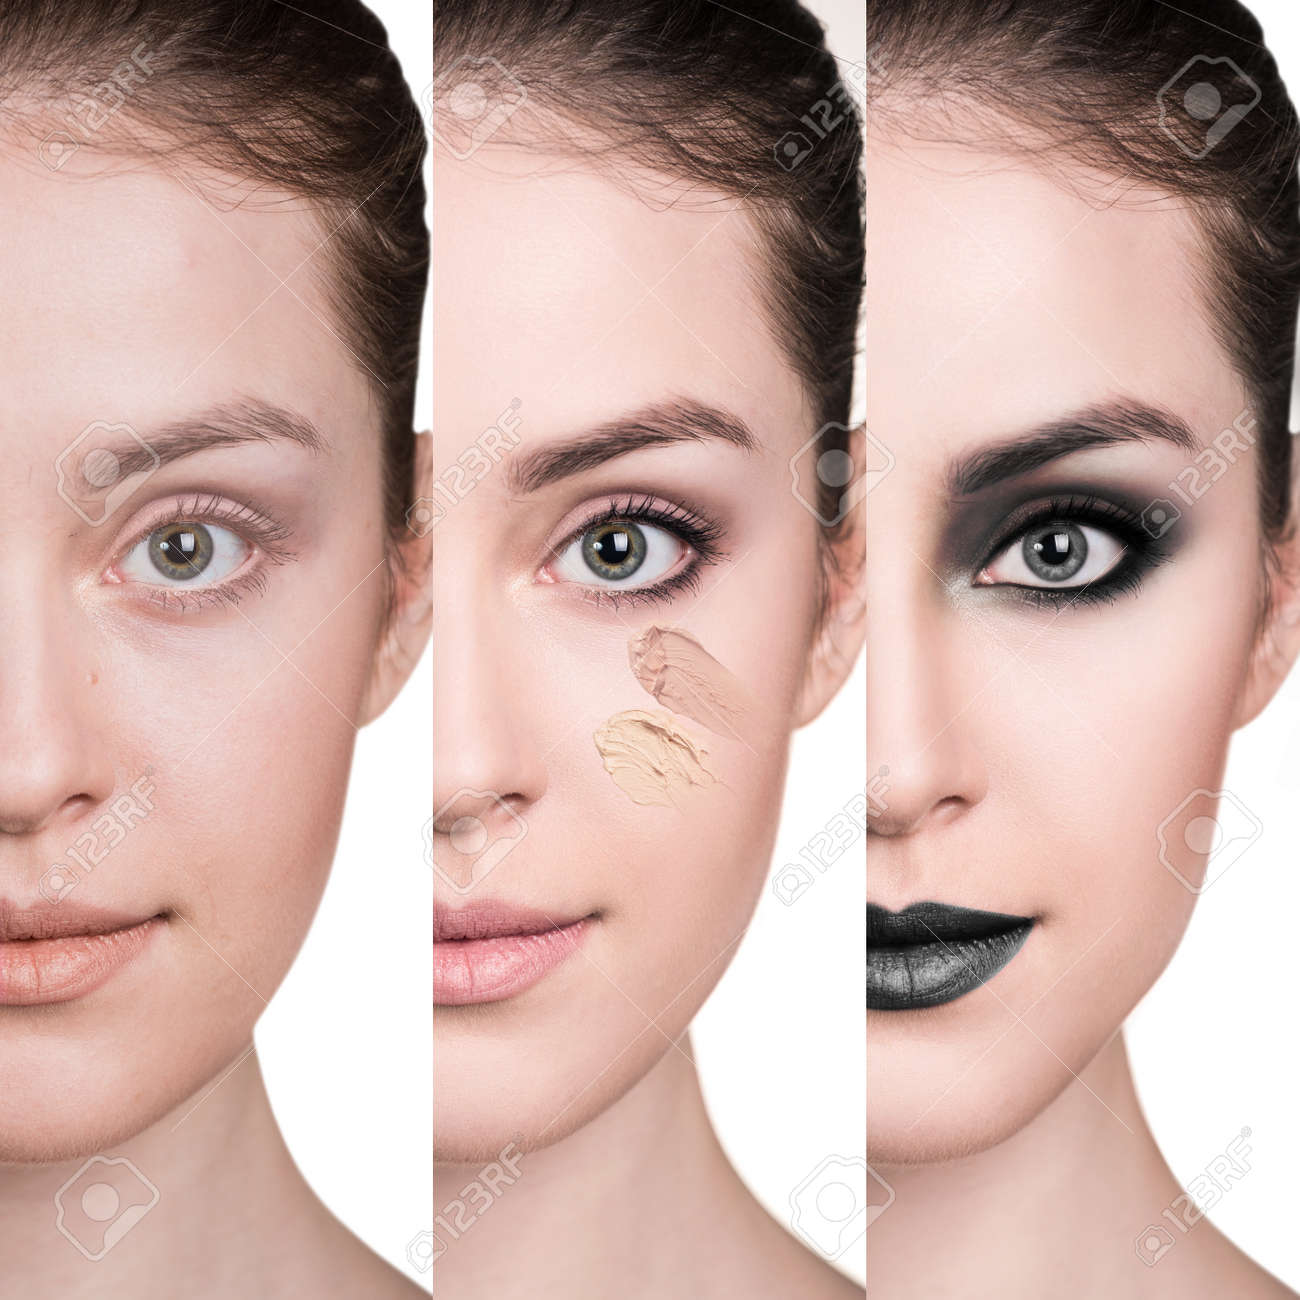 Woman before and after step by step applying make-up. - 66133665